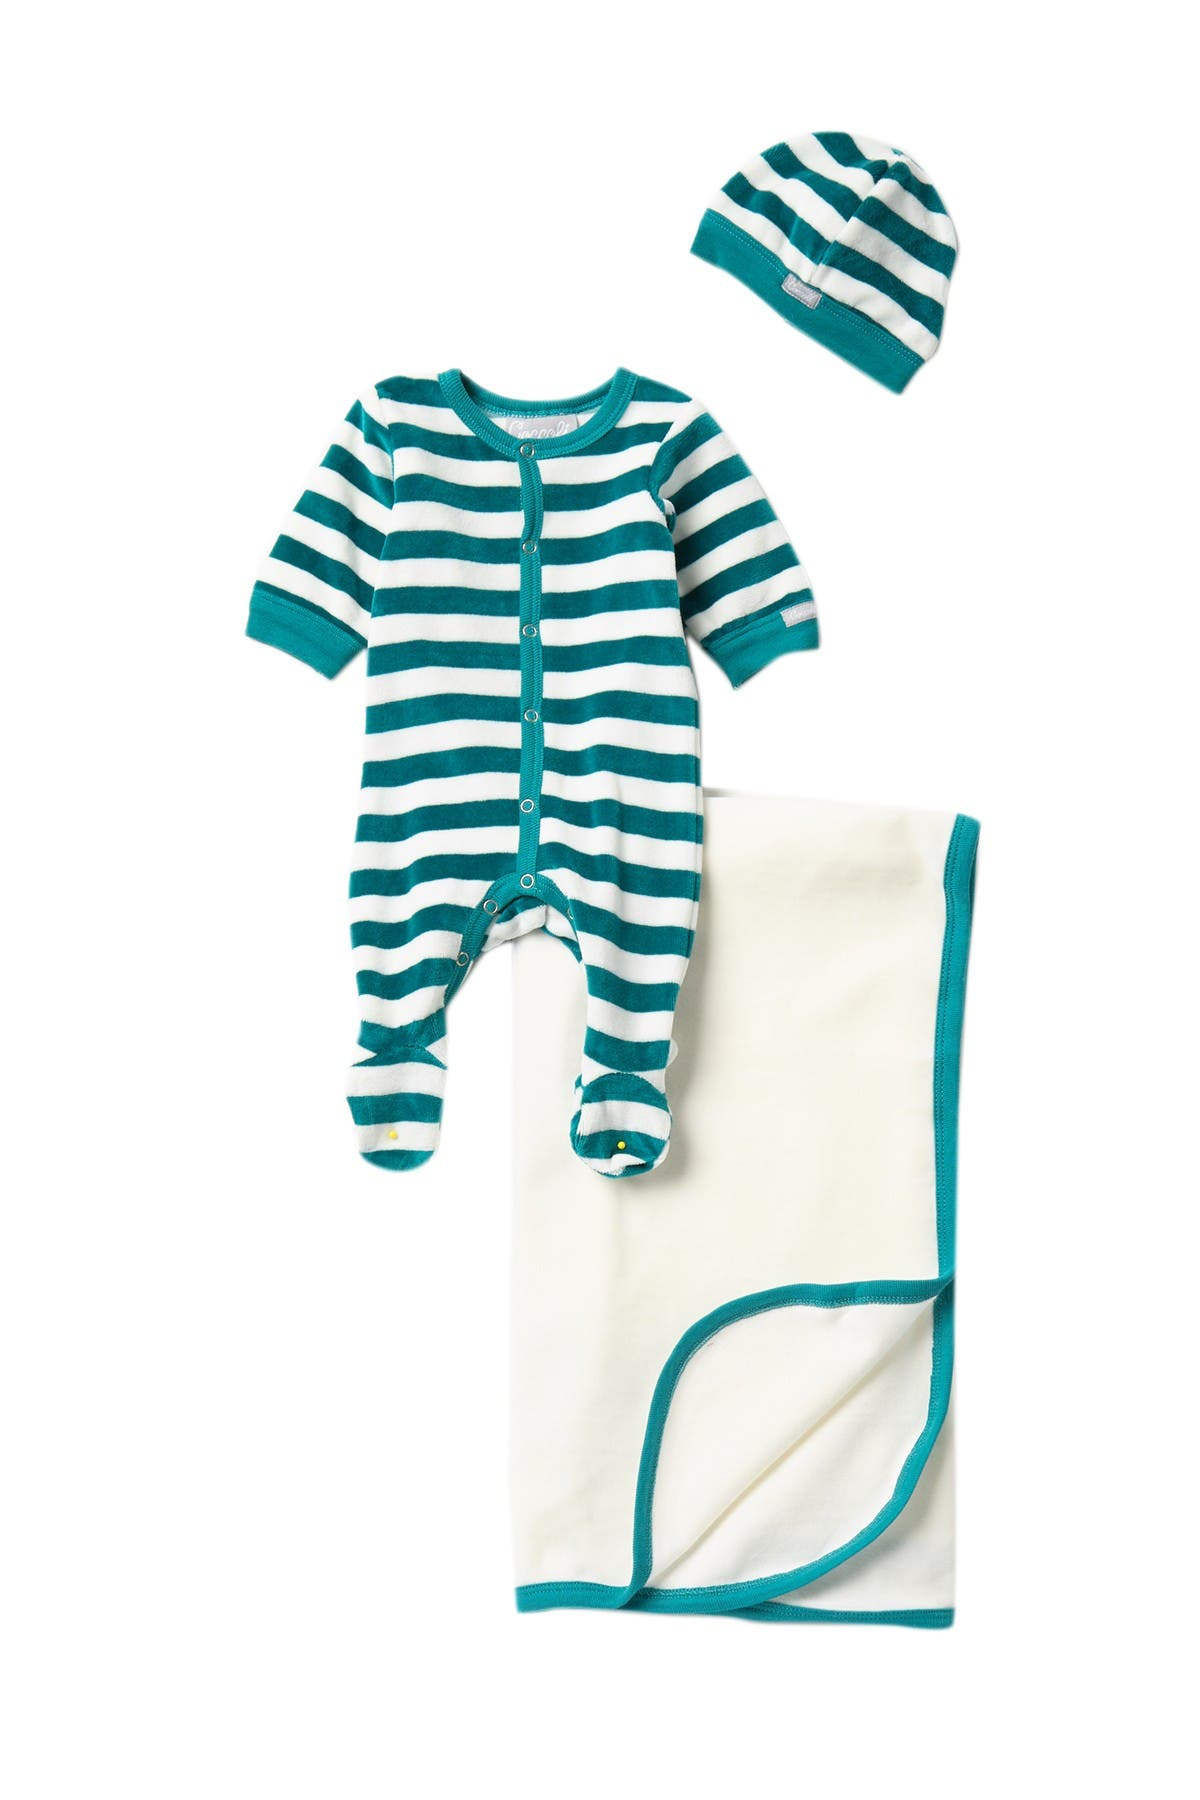 Image of Coccoli Striped Velour Footie Bodysuit, Cap, & Blanket Set